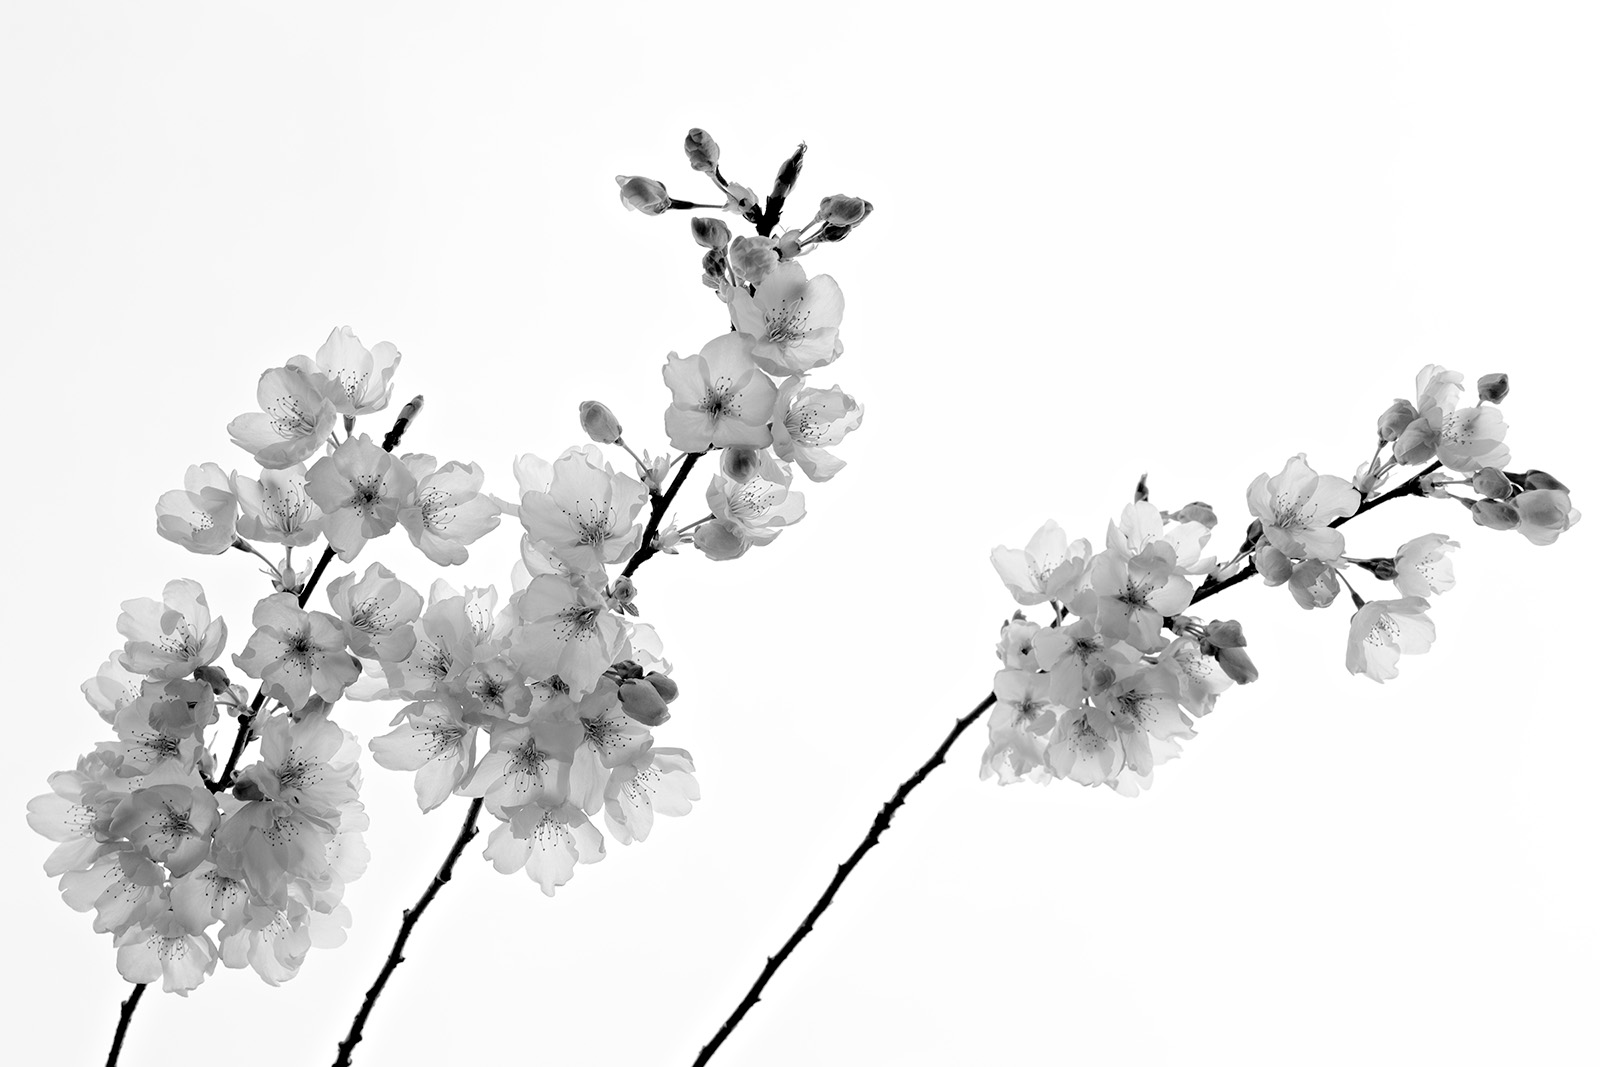 Flowers of <i>Prunus yedoensis</i> 'Akebono' rendered in black-and-white